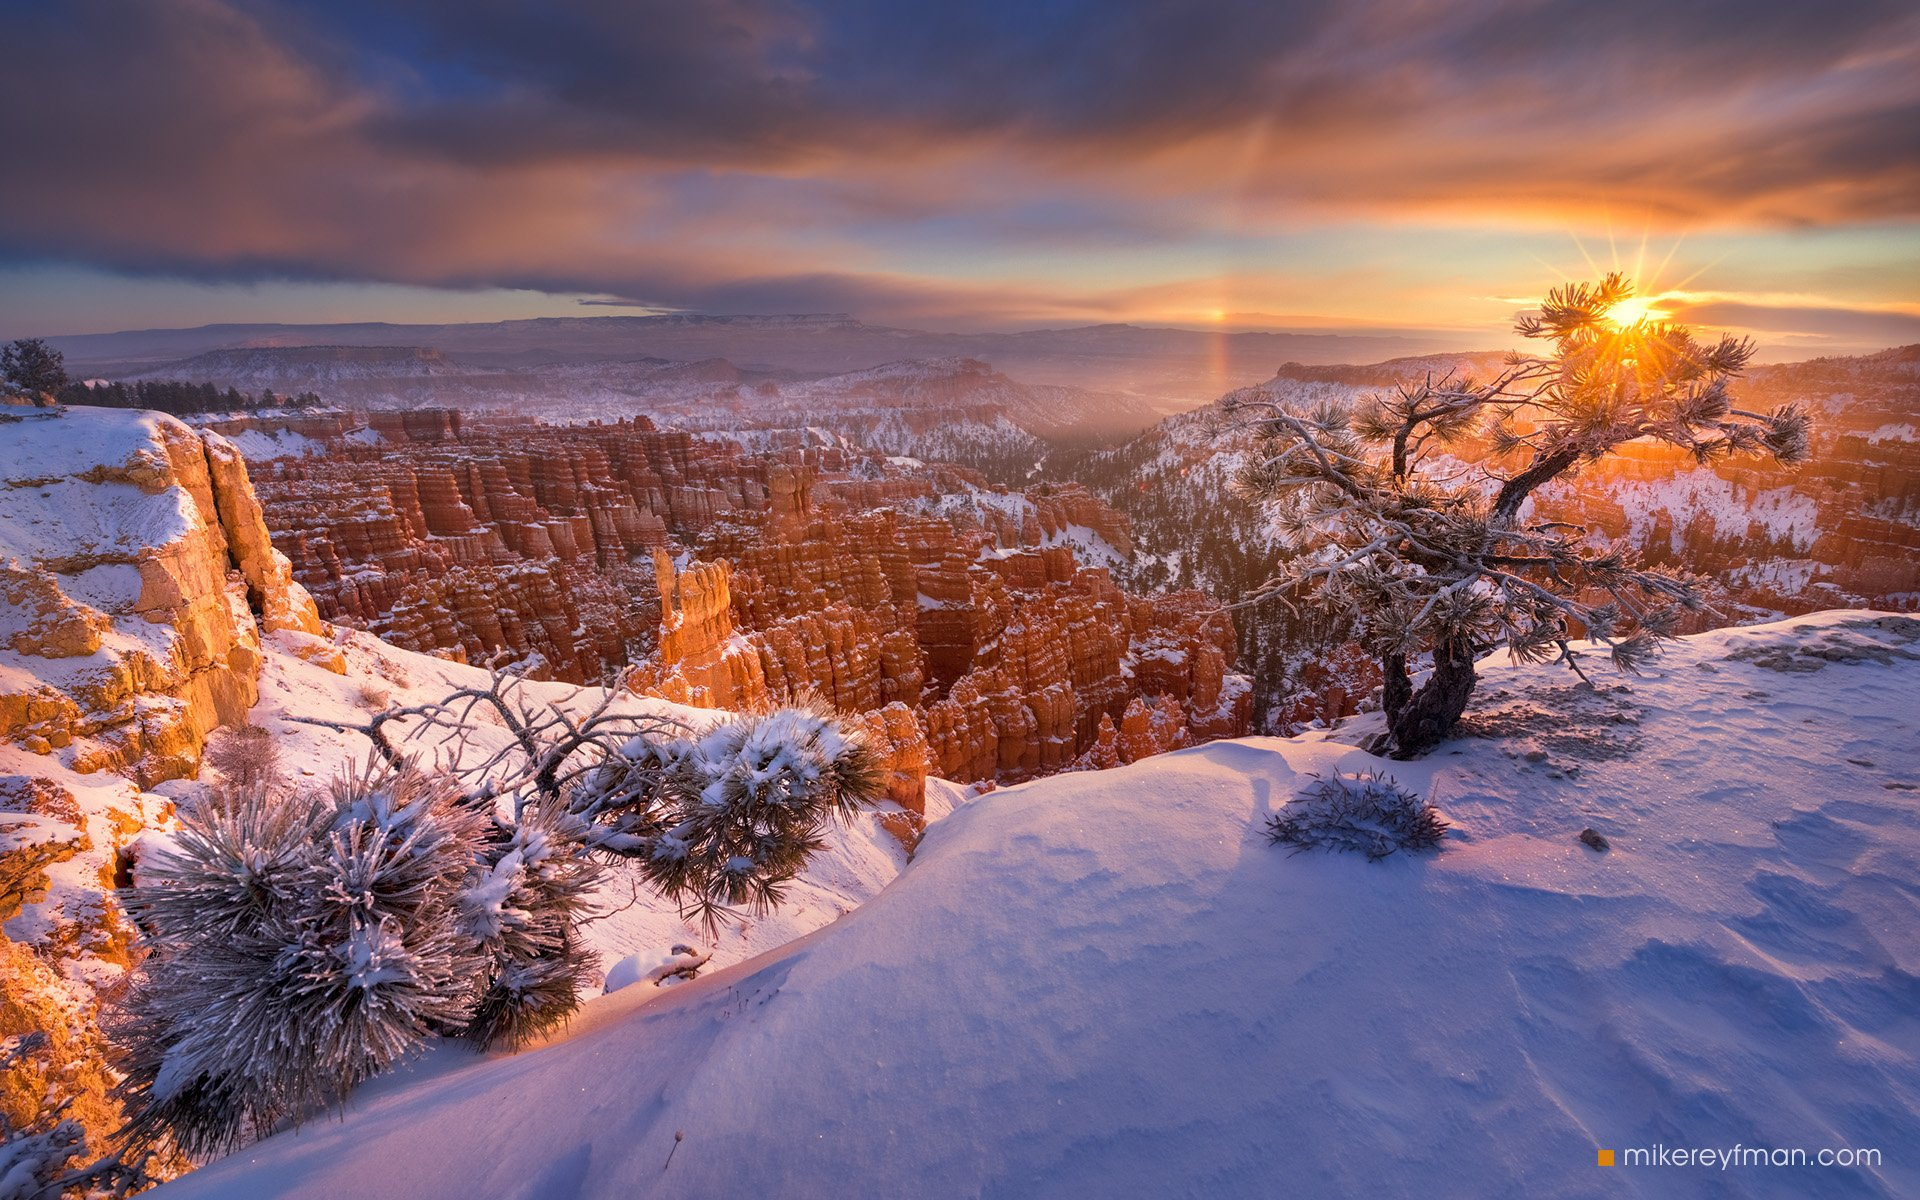 america,  arid,  beam,  beams,  beauty,  beginning,  below,  bryce,  canyon,  cold,  colorful,  dawn,  erosion,  formation,  geologic,  hoodoos,  landscape,  mountains,  national park,  sandstone,  scenic , seasons,  snow,  southwest,  spires,  start,  su, Майк Рейфман